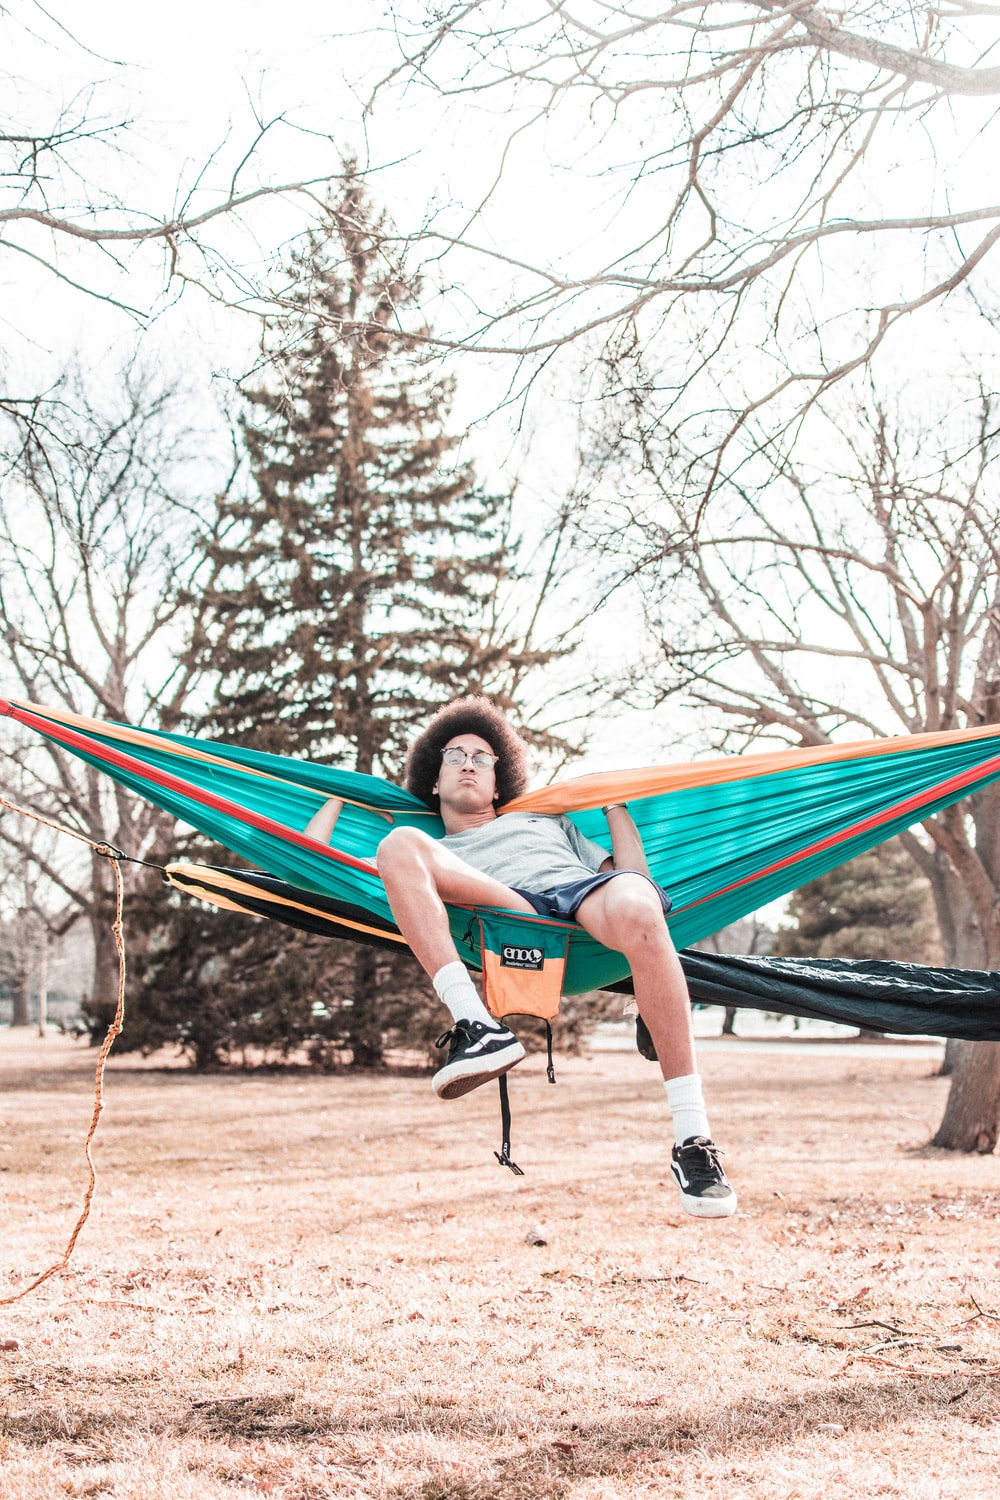 man sitting on teal hammock with withered trees on corner